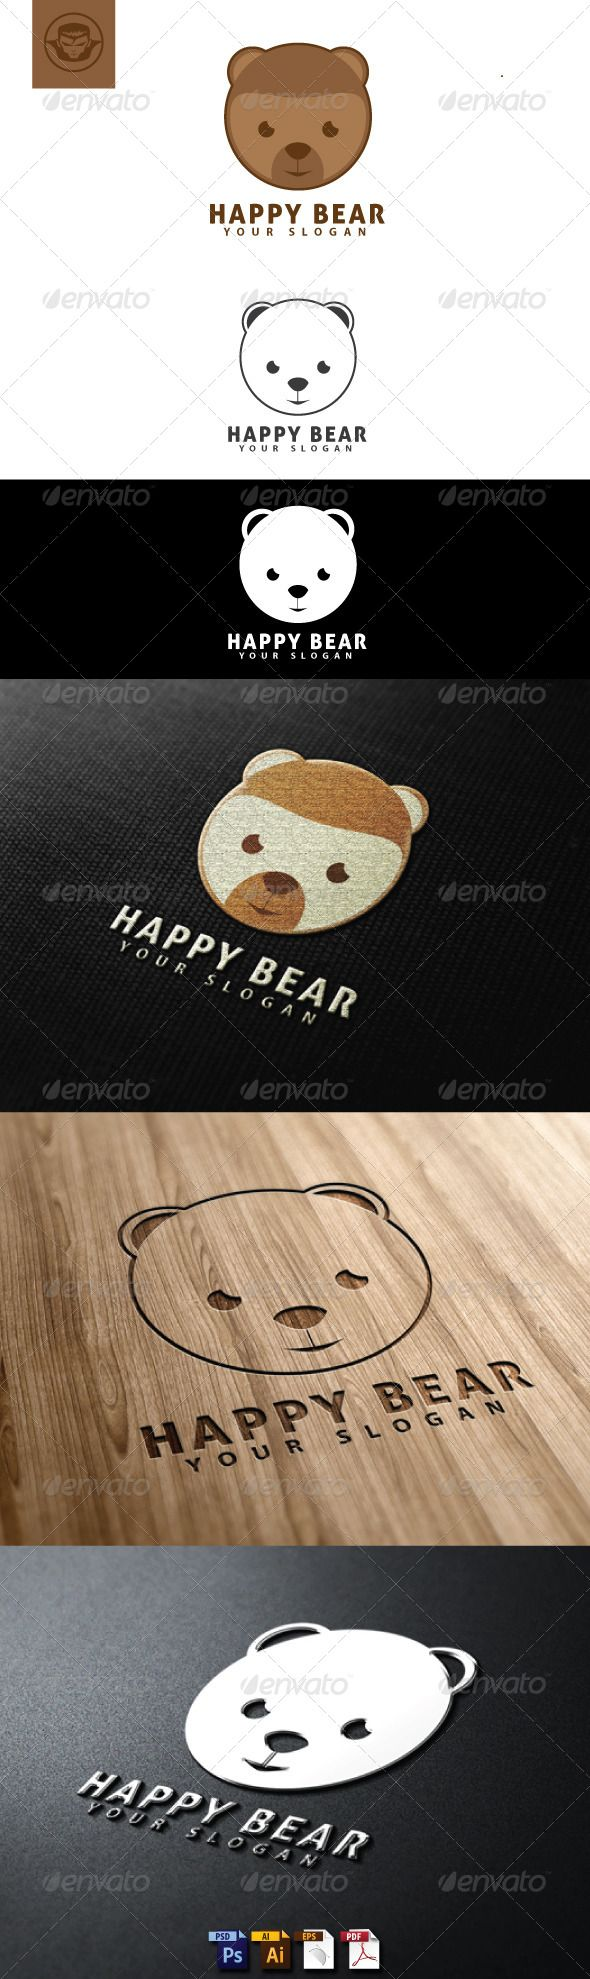 Happy Bear Logo Template — Photoshop PSD #character #head • Available here → https://graphicriver.net/item/happy-bear-logo-template/4818438?ref=pxcr